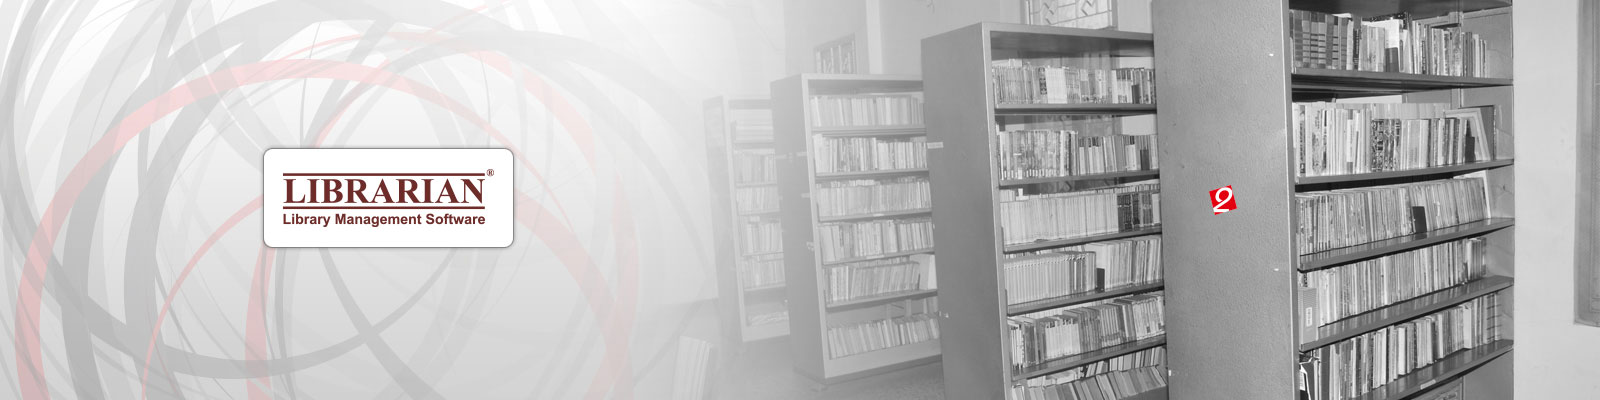 Librarian Software, Library Management Software, Library Automation